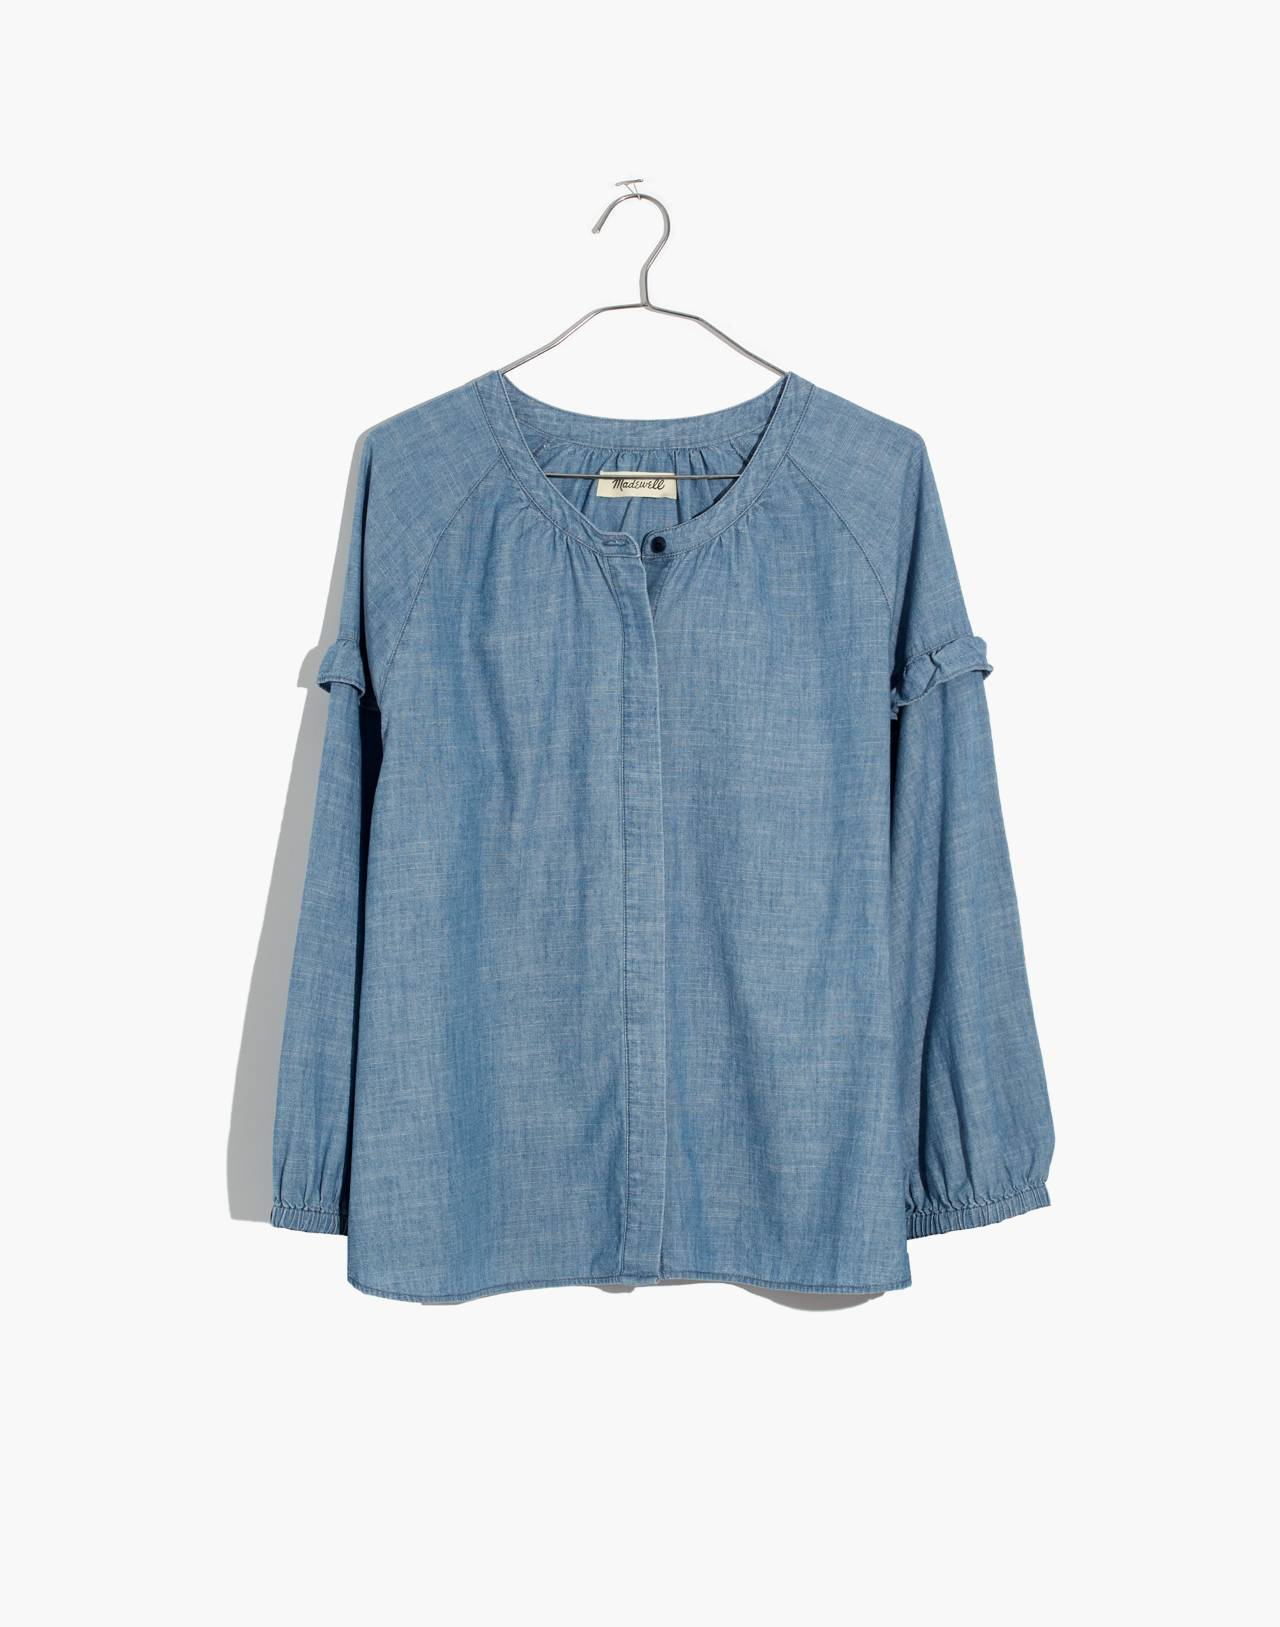 Denim Collarless Ruffle-Sleeve Shirt in verona wash image 4